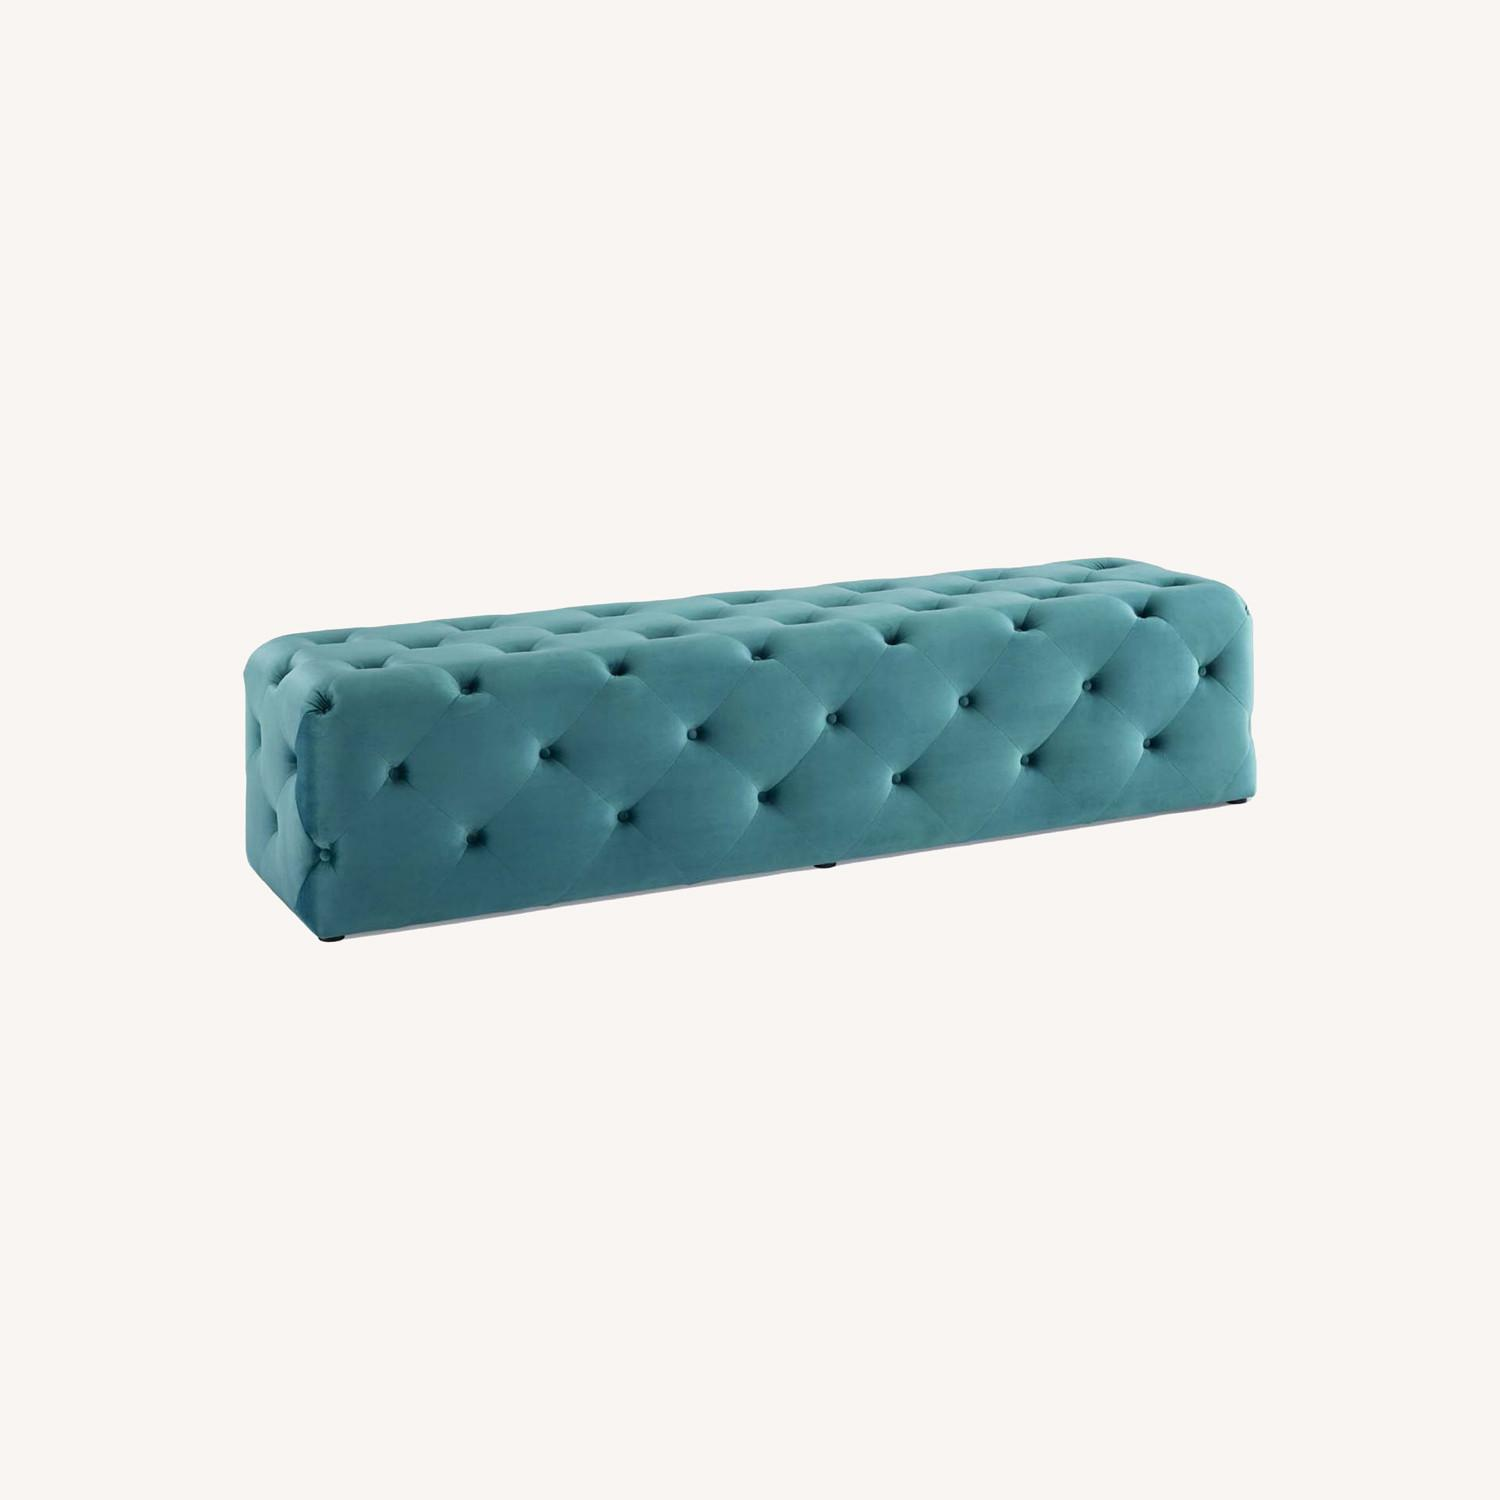 """72"""" Bench In Sea Blue Button Tufted Velvet Fabric - image-8"""